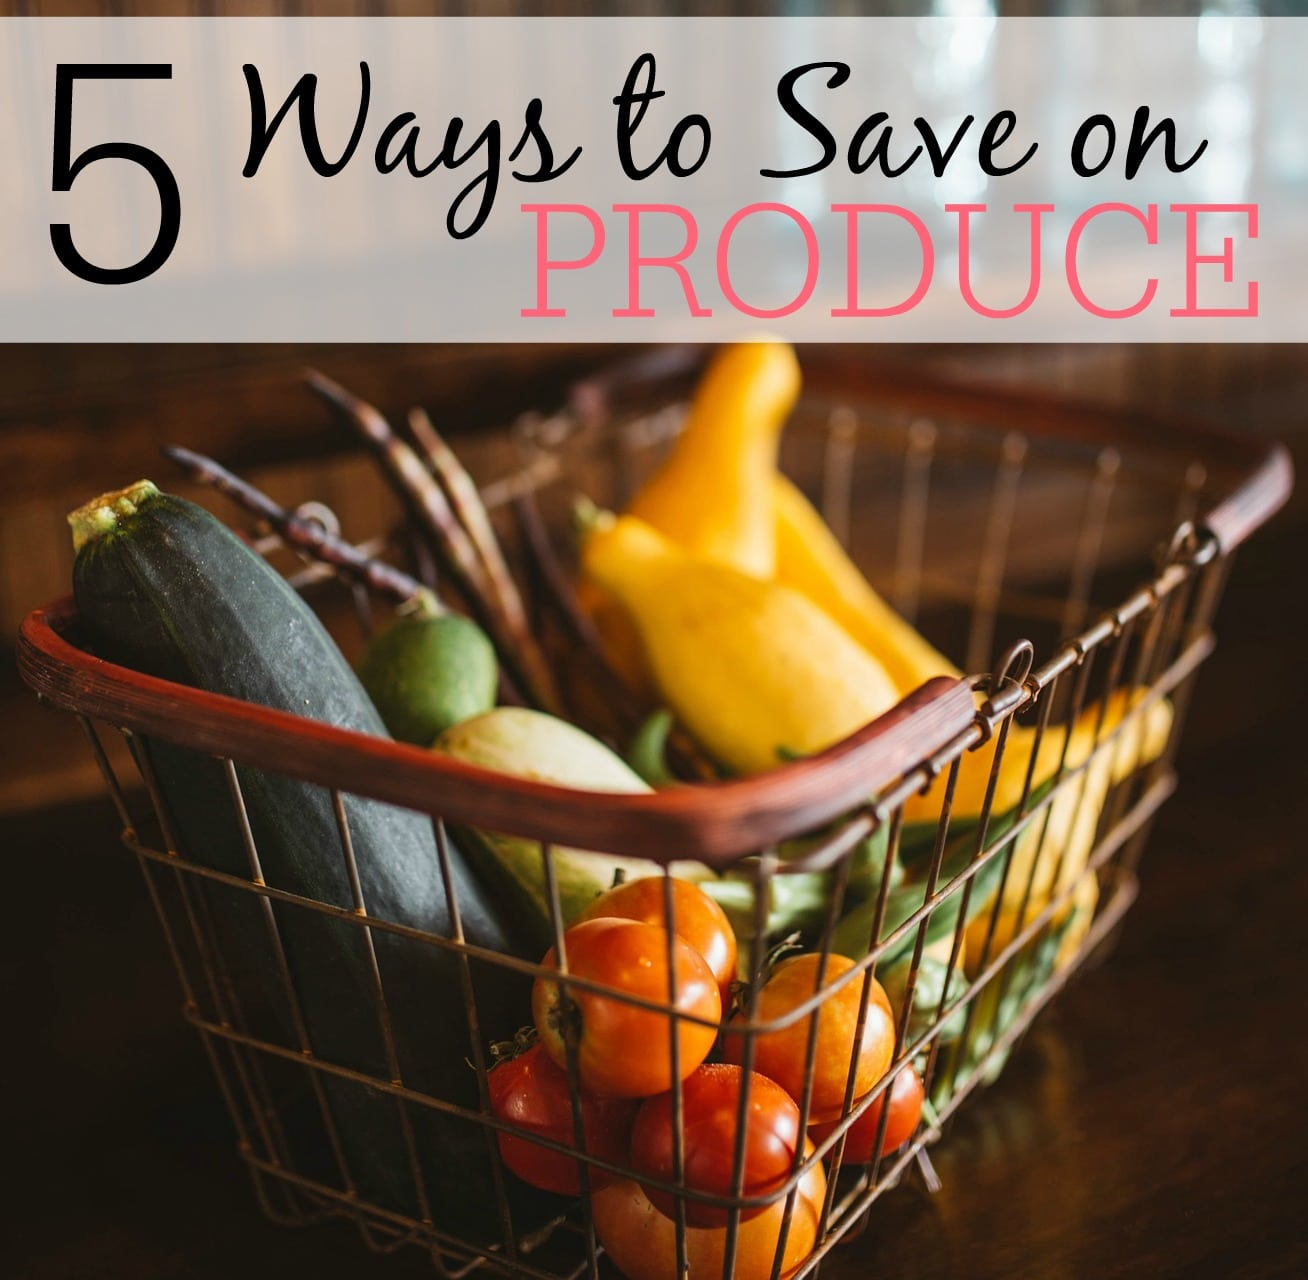 5 Ways to Save on Produce